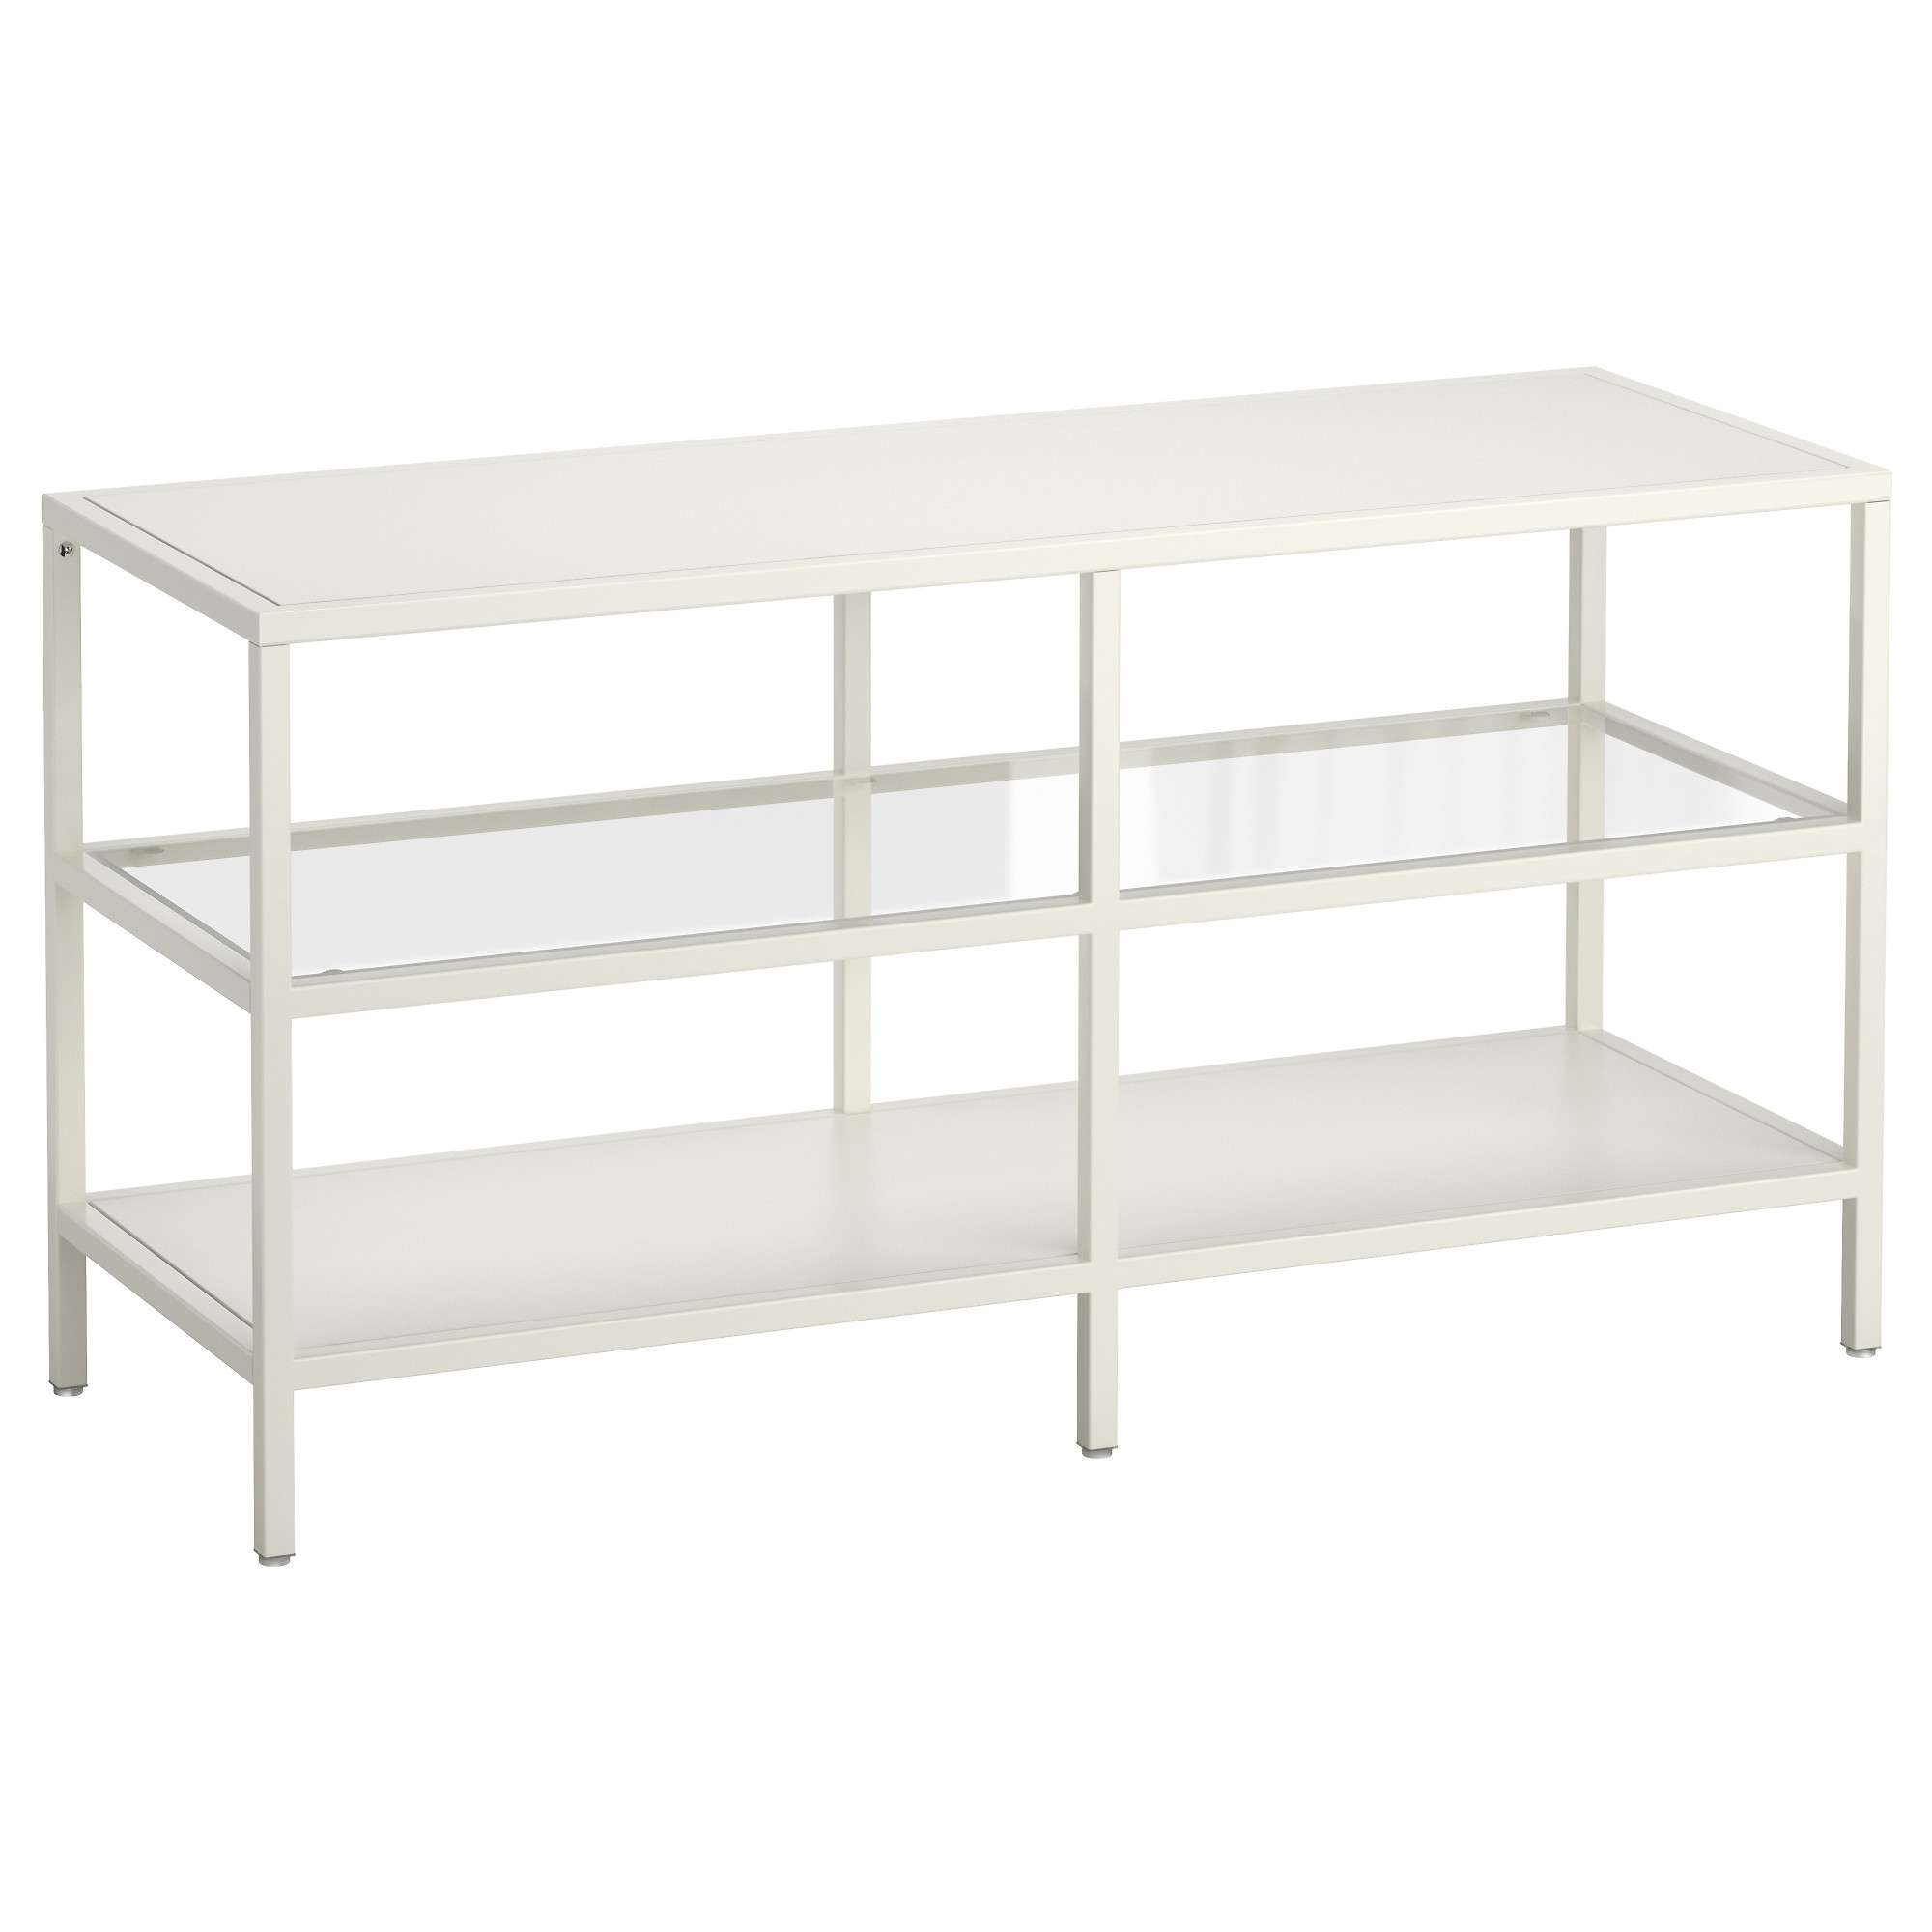 Vittsjö Tv Unit – White/glass – Ikea In White Glass Tv Stands (Gallery 15 of 15)